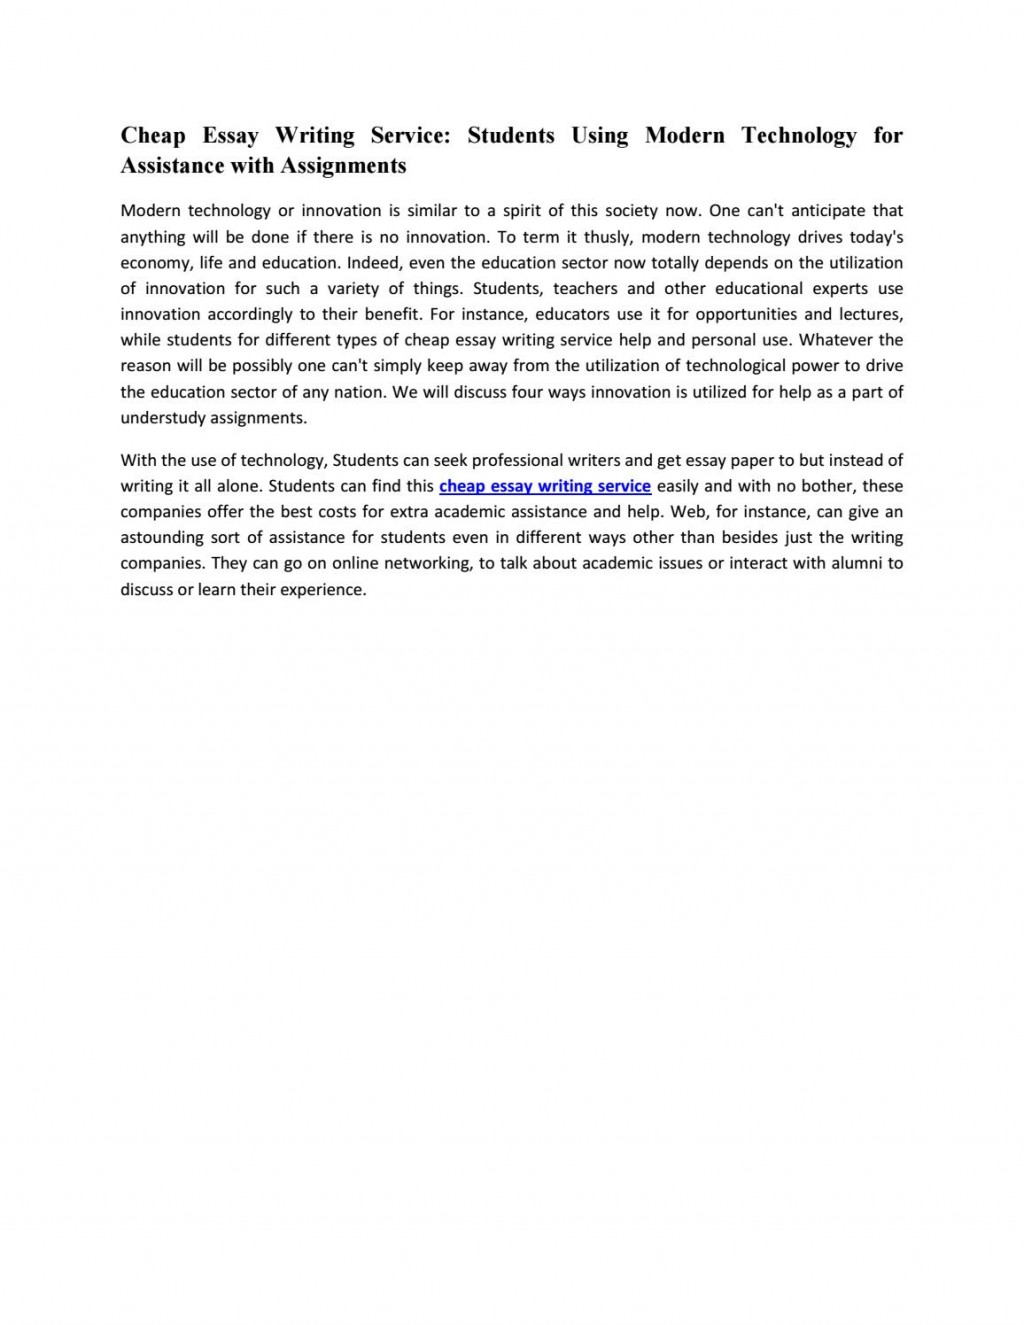 020 Essay Example Page 1 About Modern Wonderful Technology Pros And Cons In Everyday Life 2050 Large